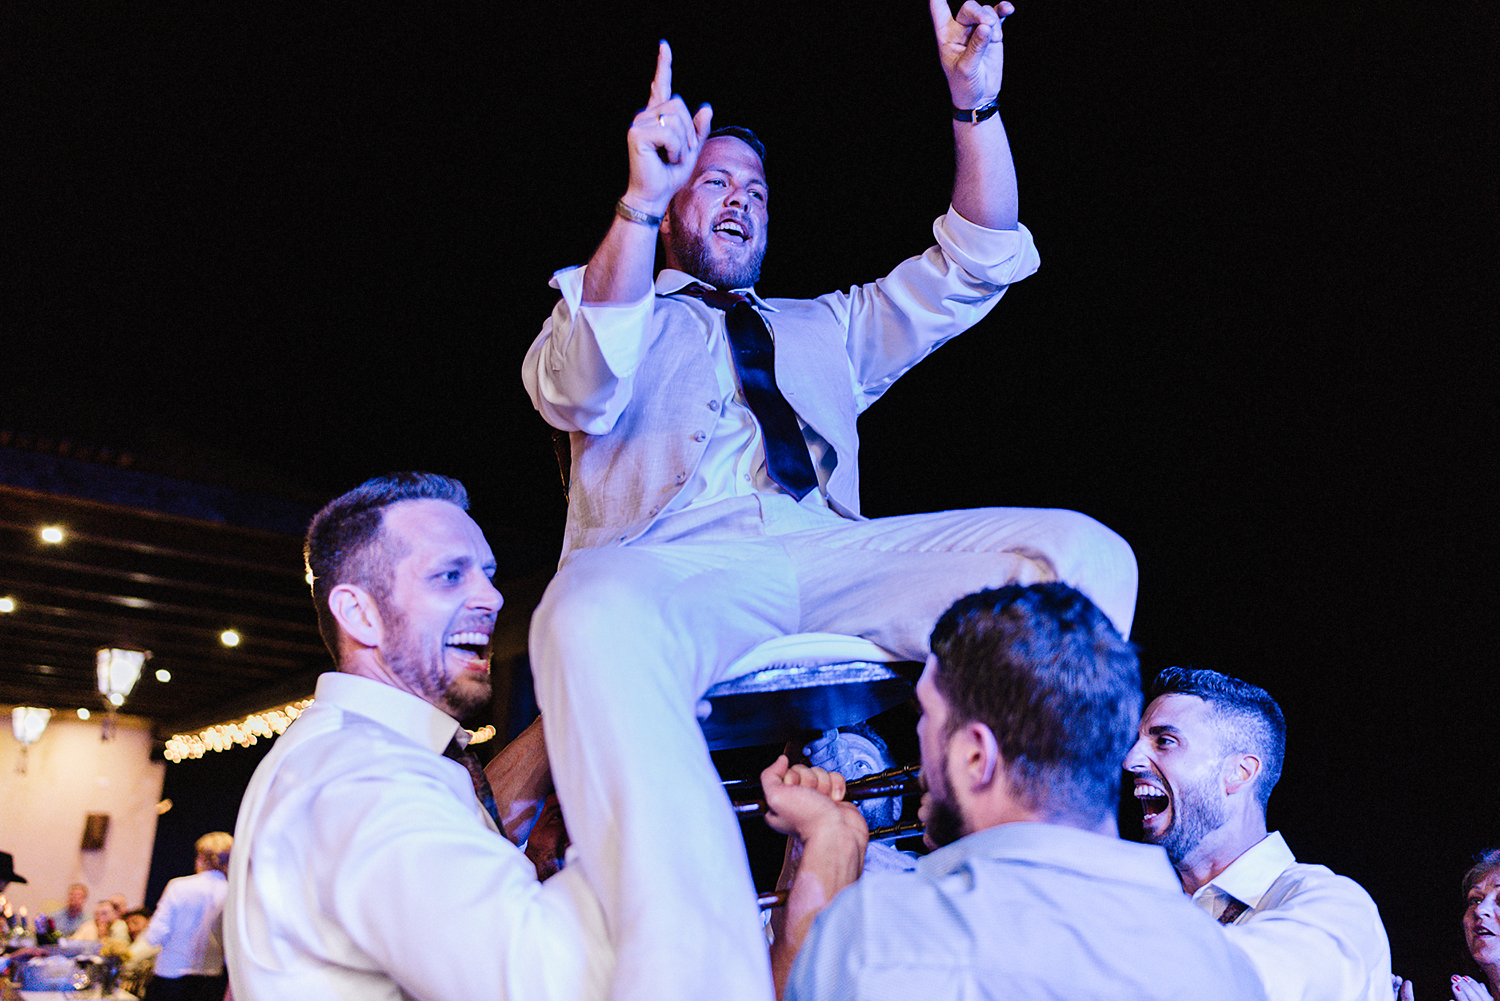 cabo-san-lucas-ventanas-private-residence-alternative-toronto-wedding-photographer-documentary-photojournalistic-reception-party-dancing-photos-candid-documentary-moments-trendy-cool-hipster-hip-hop-partying-groom-lifted-up-on-chair.jpg